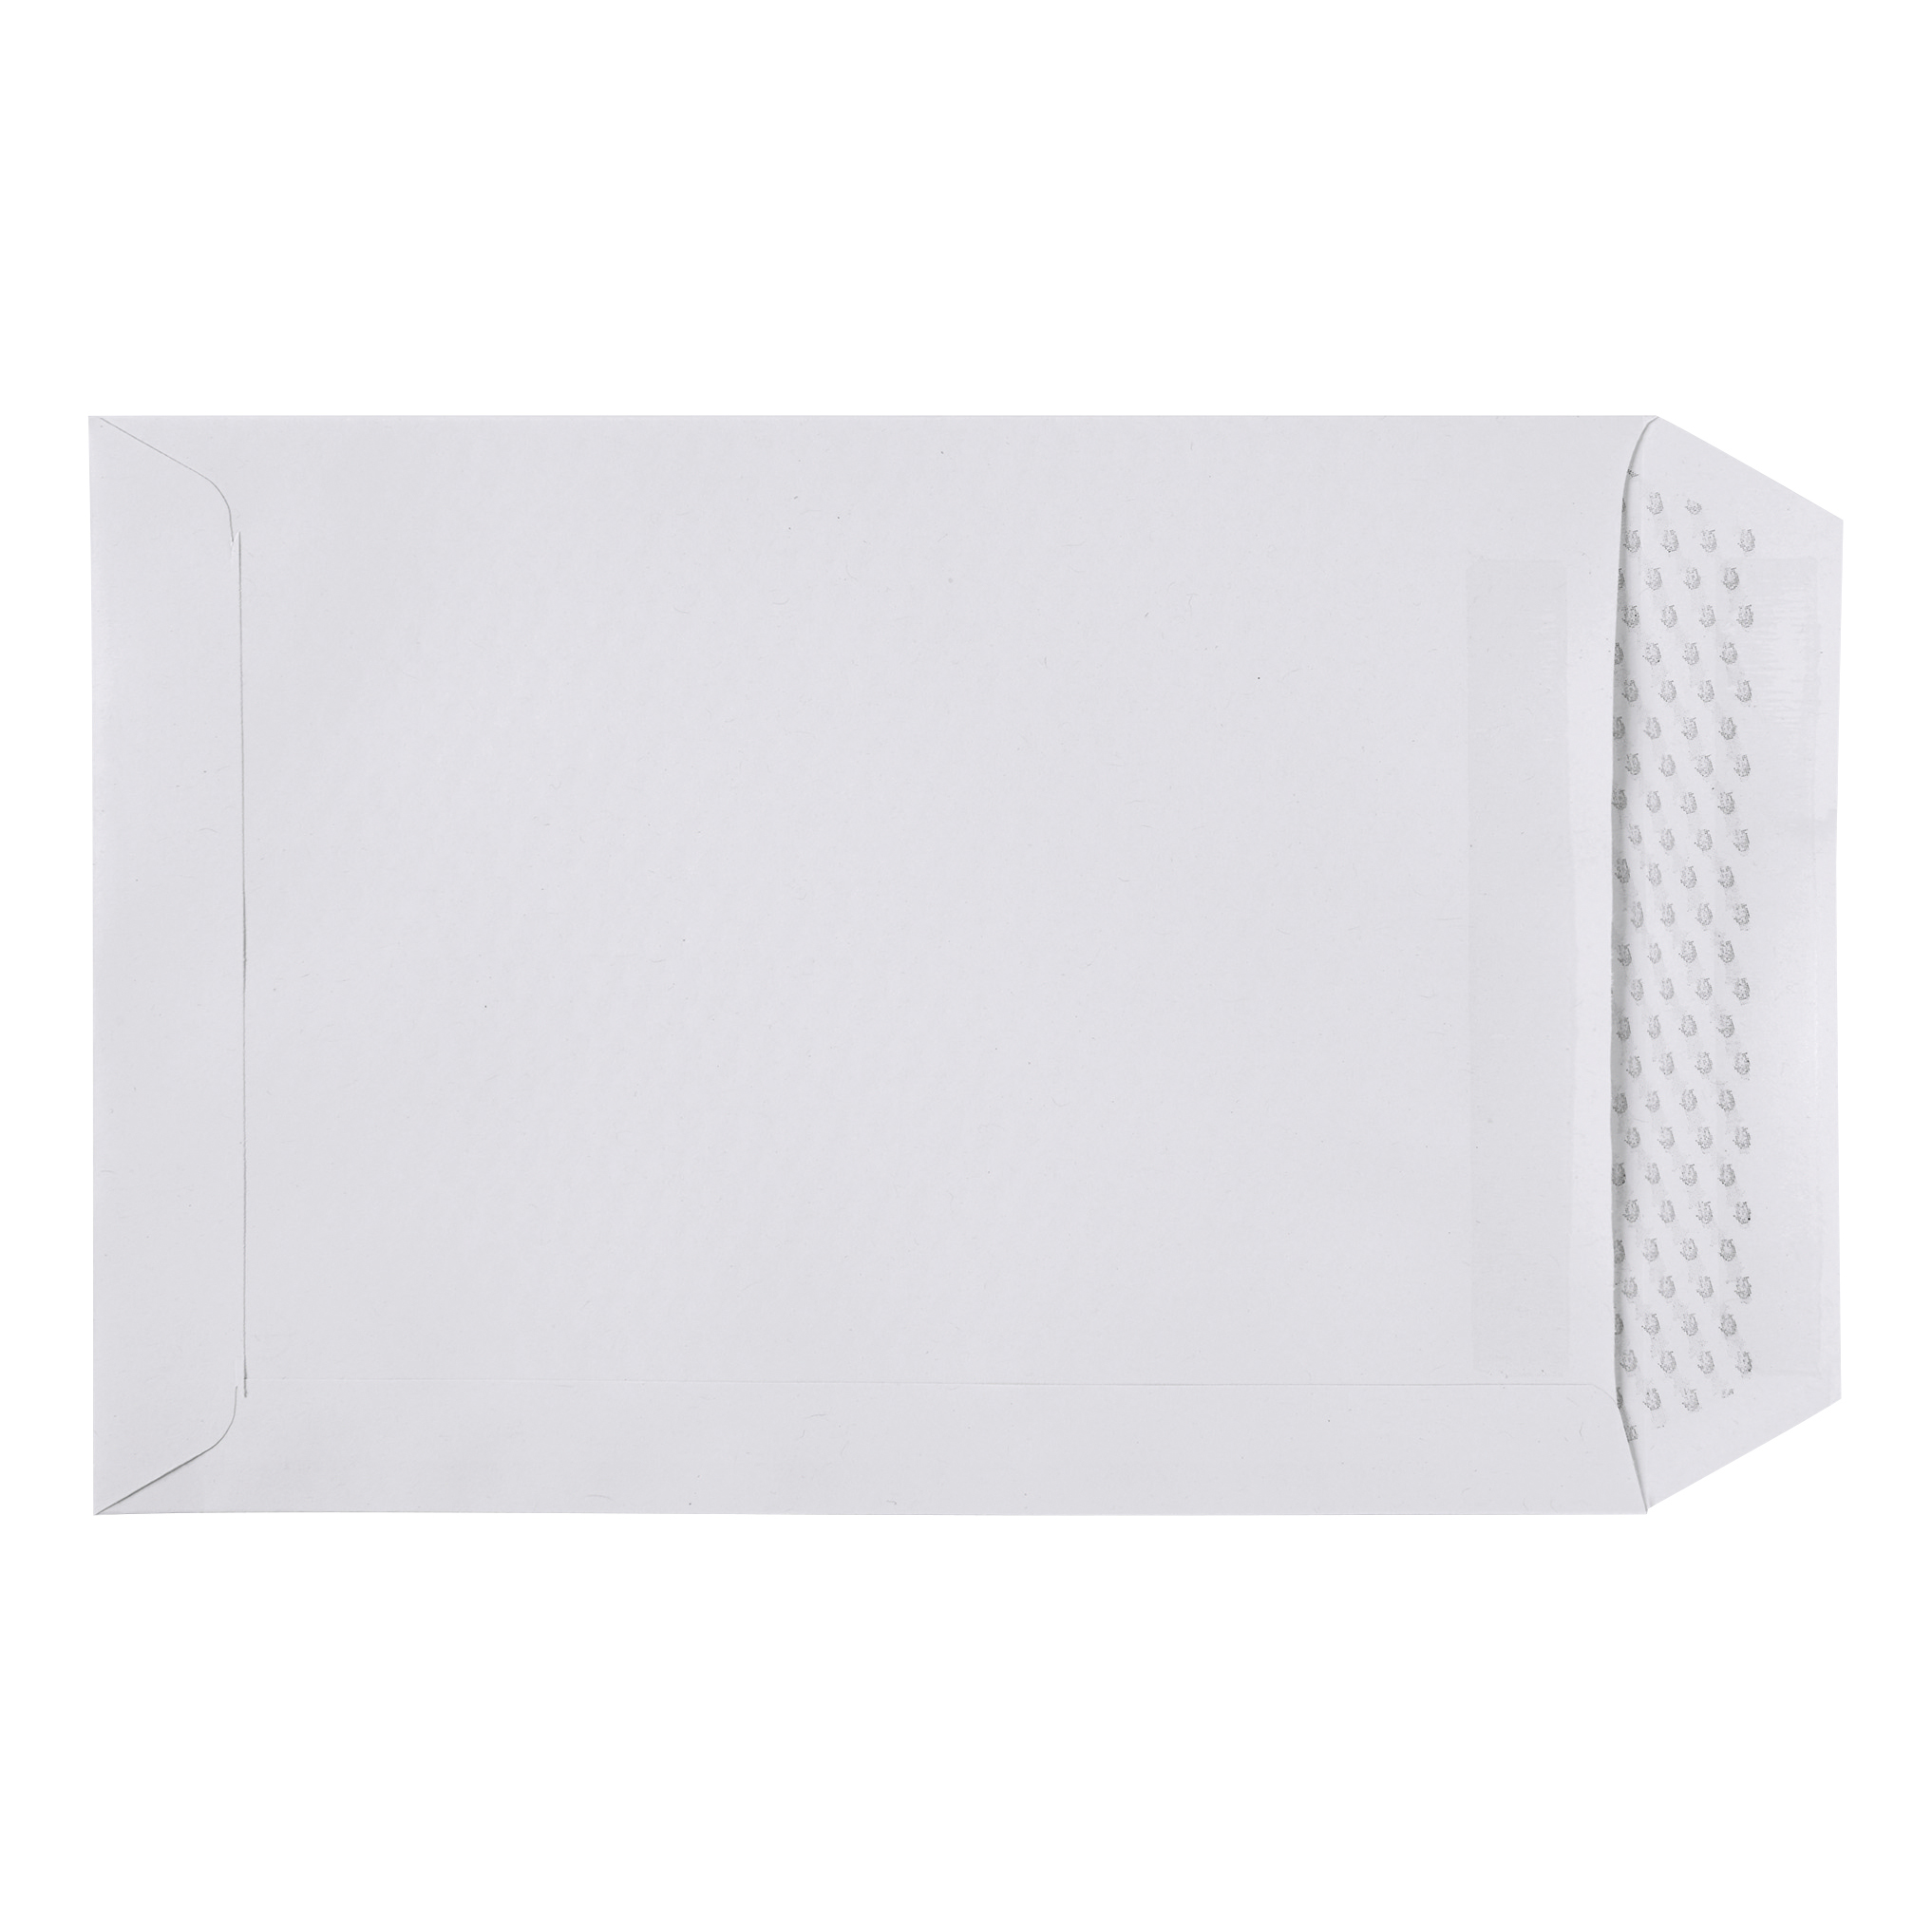 5 Star Eco Envelopes Recycled Pocket Self Seal 90gsm C5 229x162mm White [Pack 500]